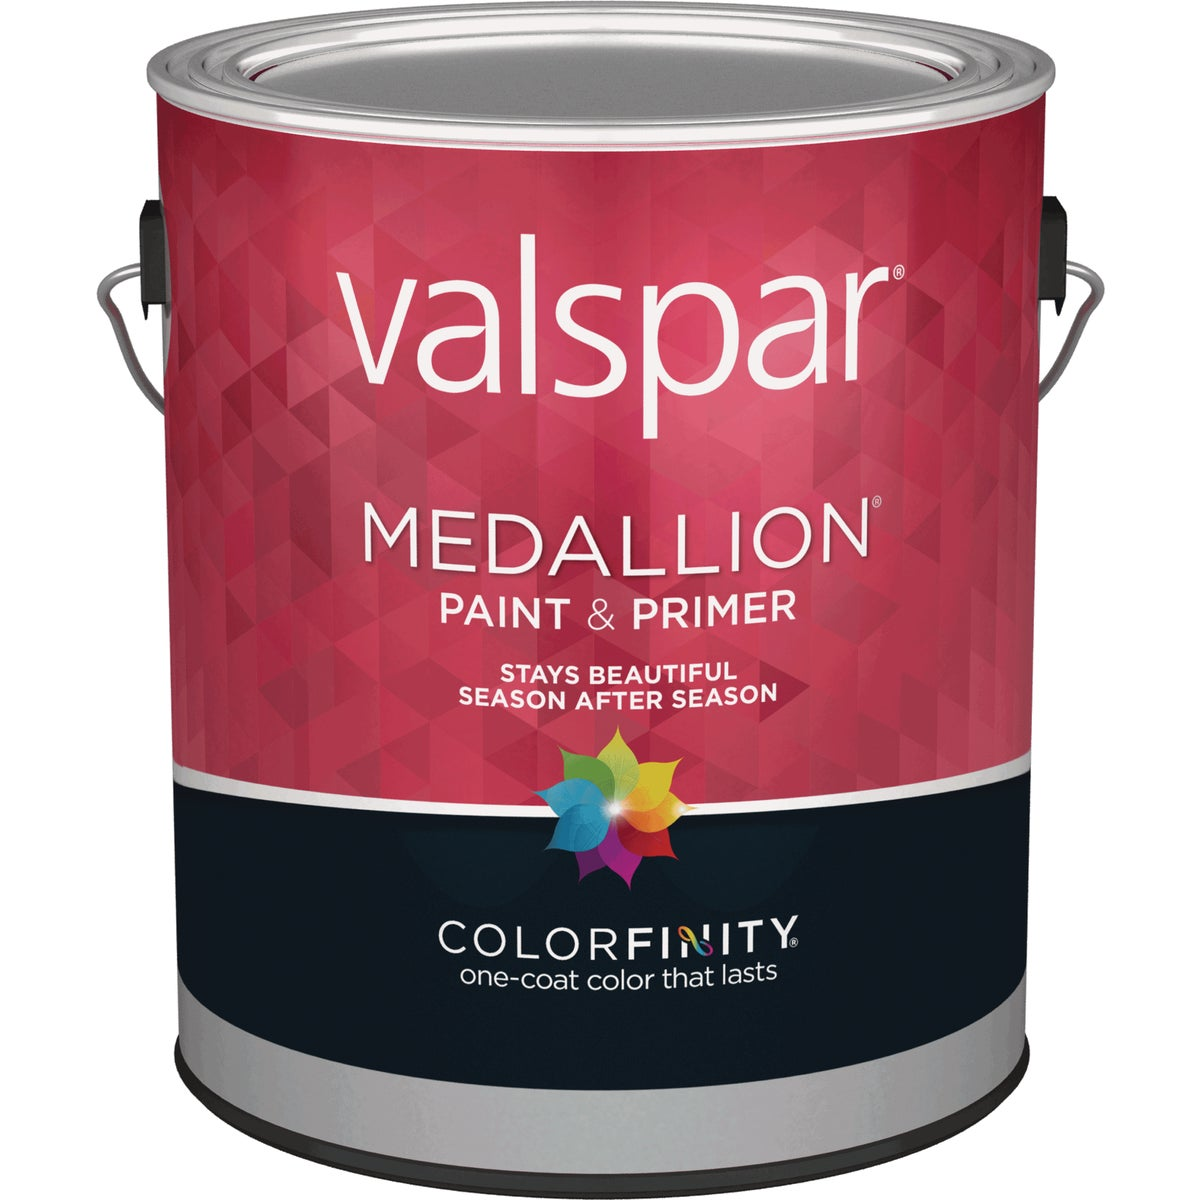 EXT FLAT BLACK PAINT - 027.0045515.007 by Valspar Corp